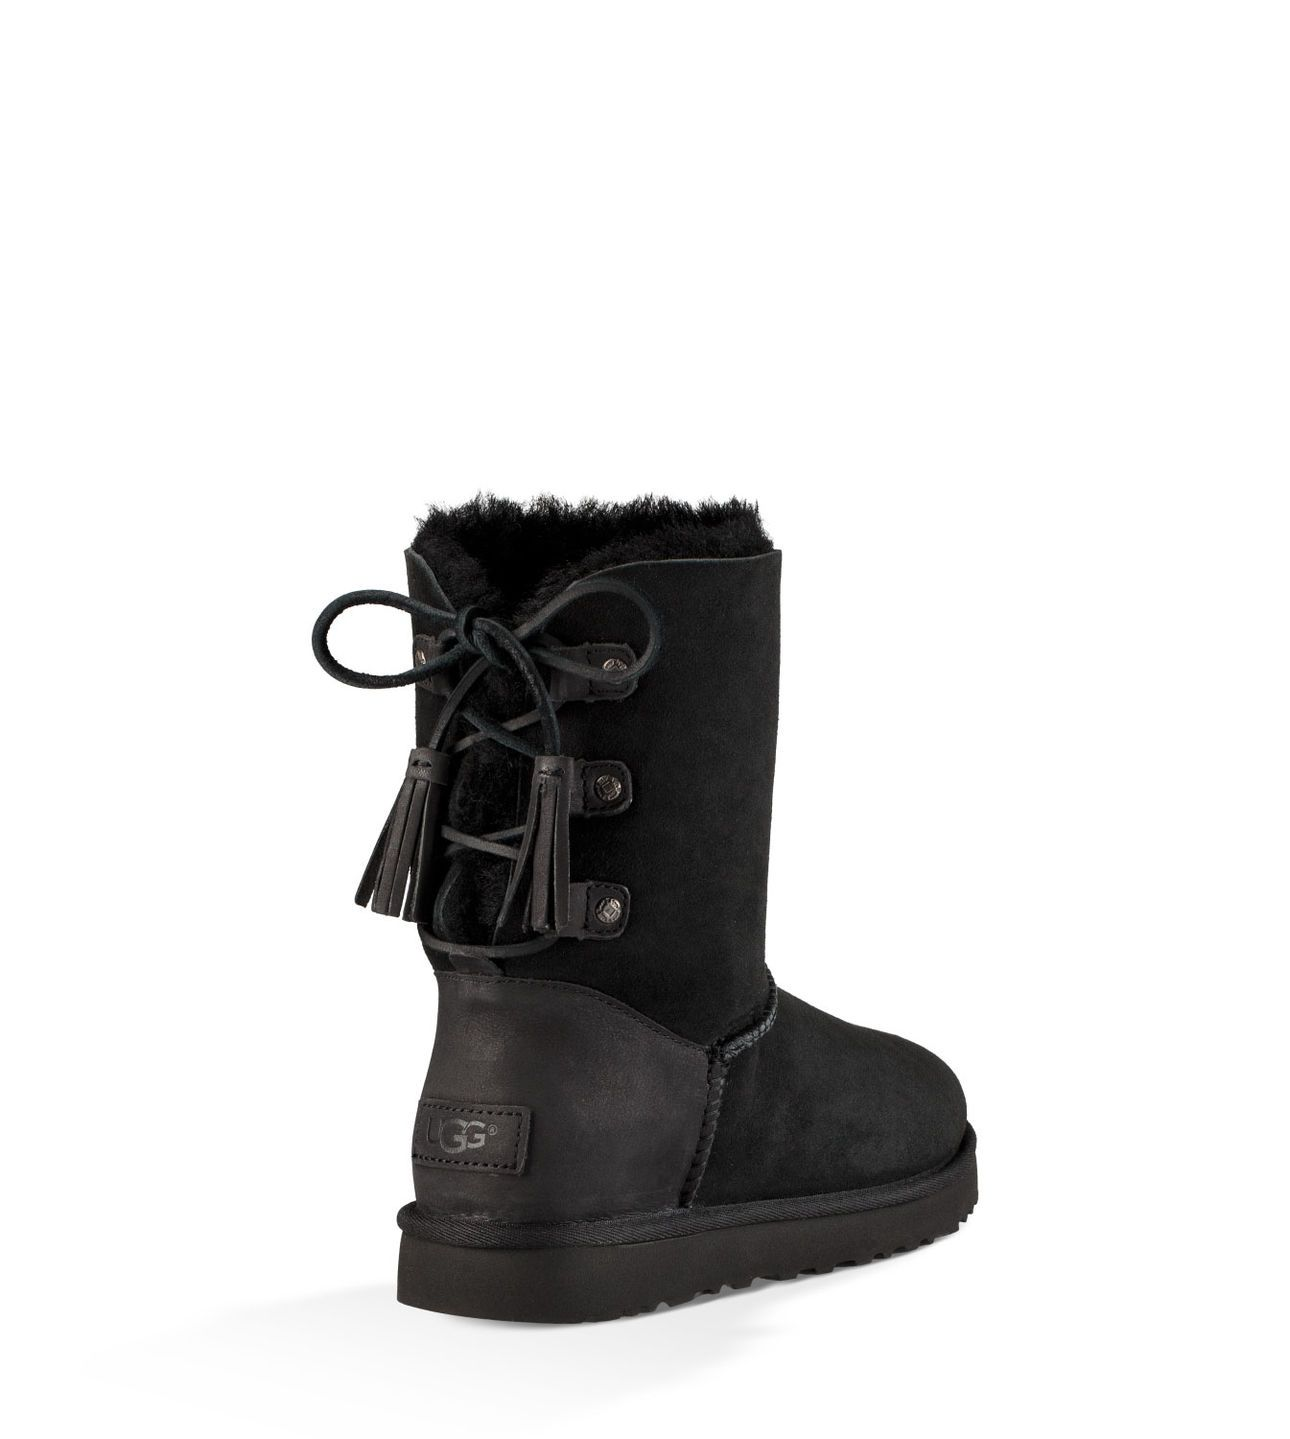 185e775e37 Shop the Women's Kristabelle Classic Boot on the Official UGG ...